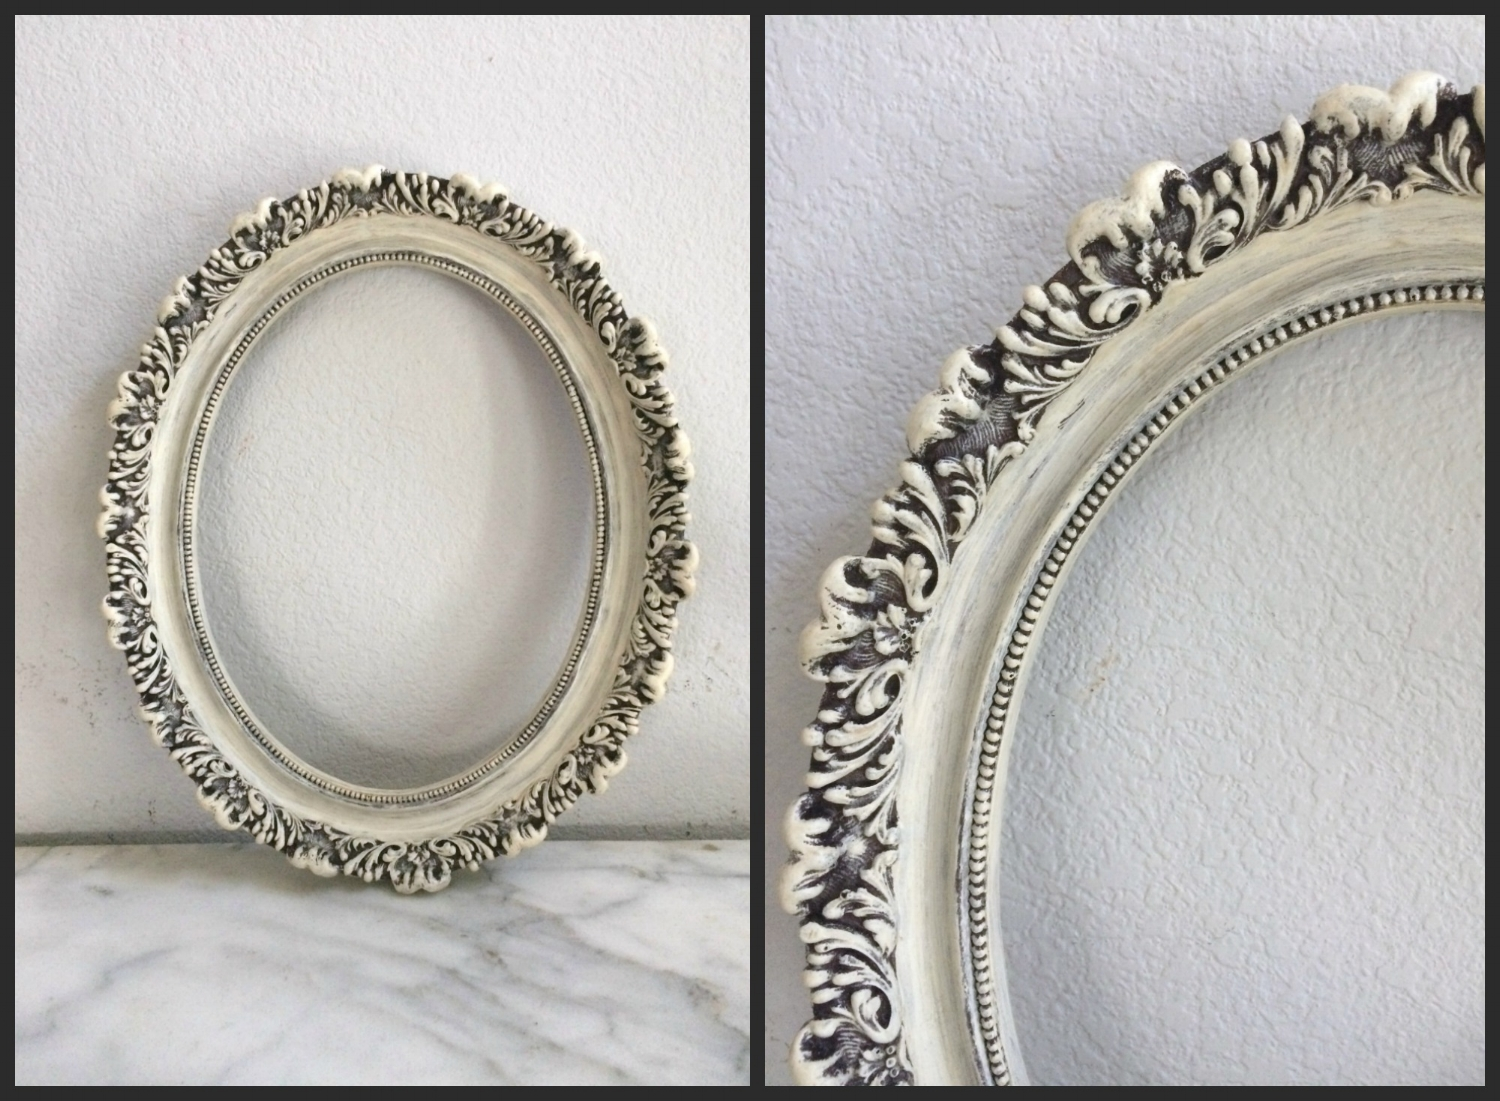 SMALL - WHITE, OVAL ORNATE - 18 x 14 - $10